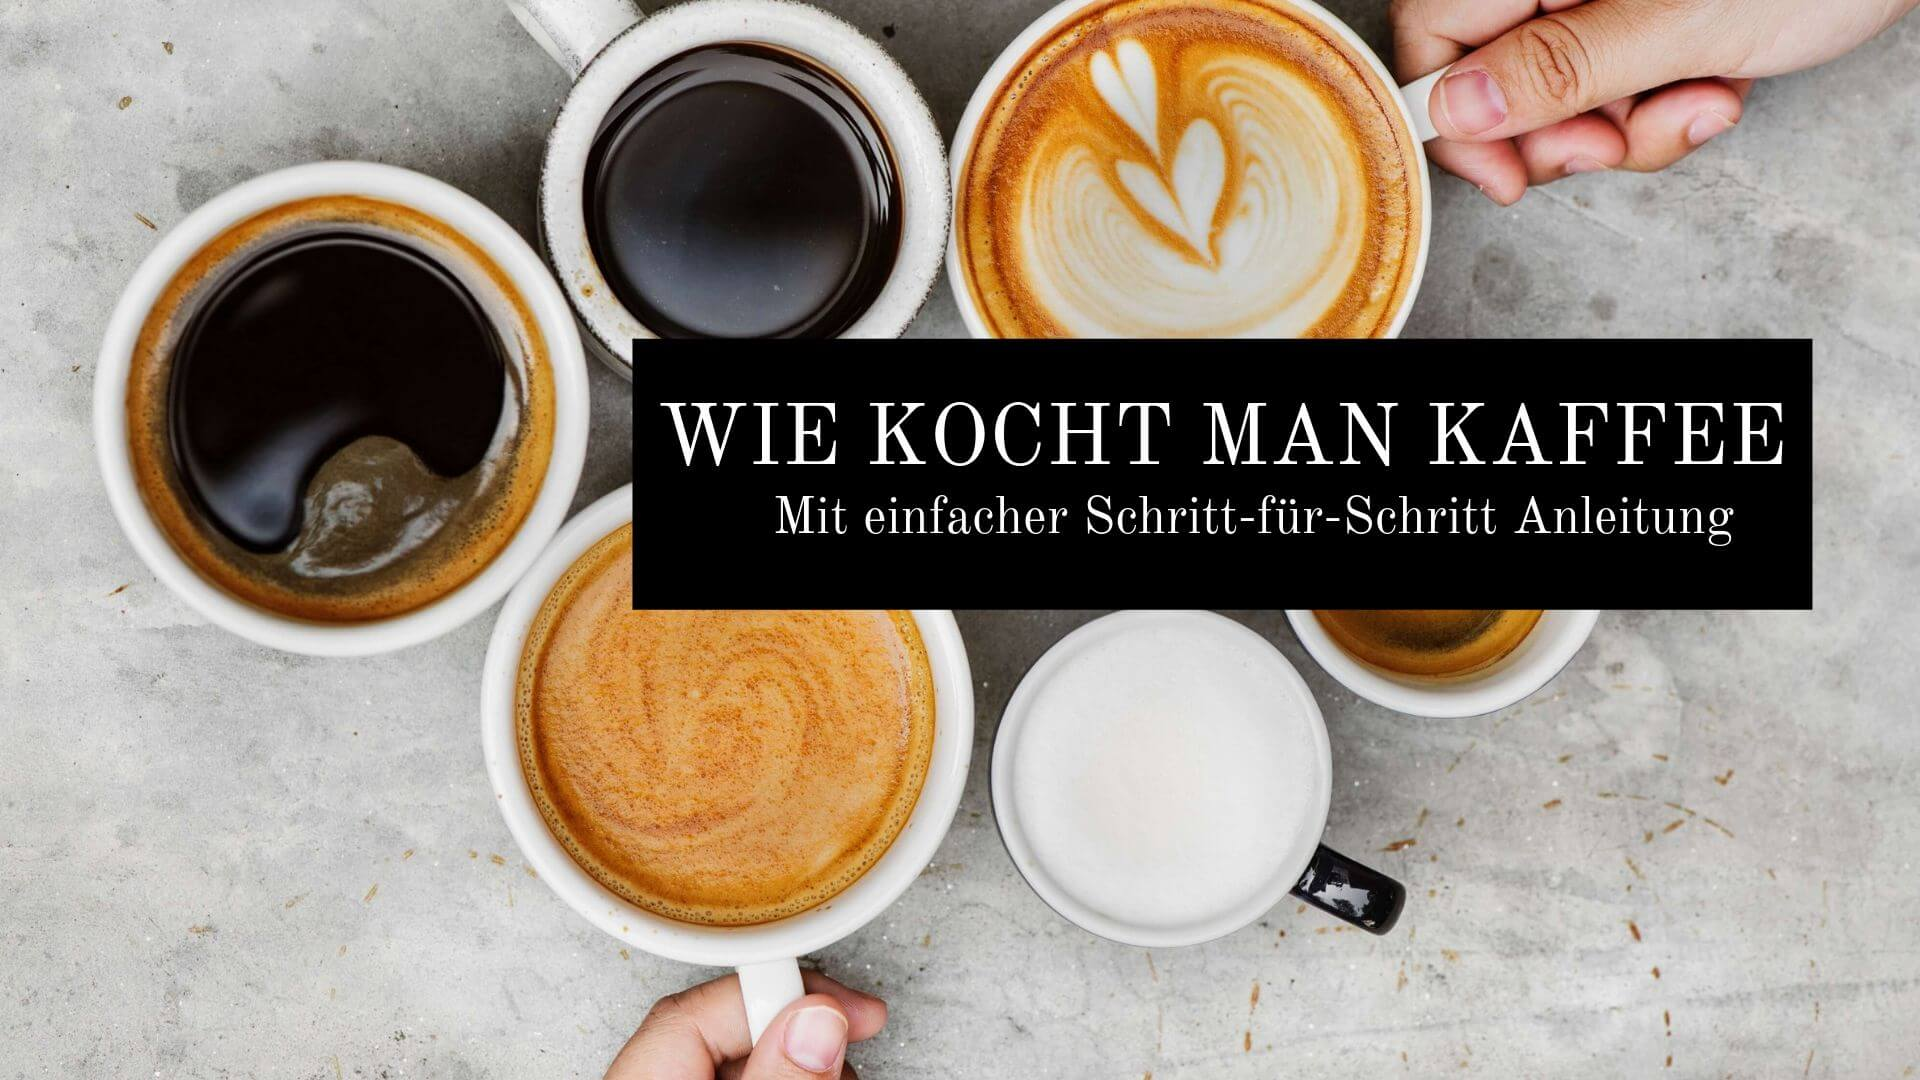 You are currently viewing WIE KOCHT MAN KAFFEE